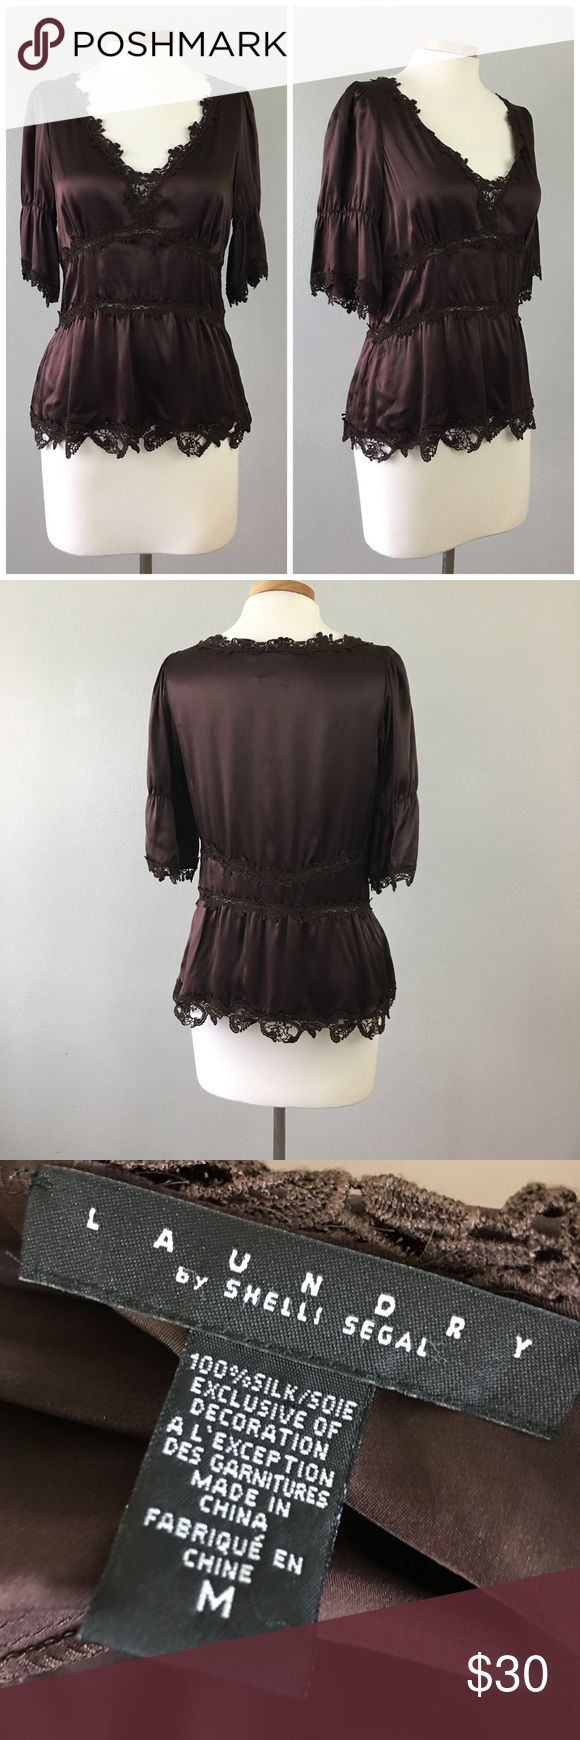 Laundry Shelli Segal Chocolate Brown Lace Blouse Laundry Shelli Segal Chocolate Brown Lace Blouse. Size medium. Gorgeous blouse! Thank you for looking at my listing. Please feel free to comment with any questions (no trades/modeling).  •Fabric: Silk  •Condition: very good, no holes or stains.   ✨Bundle and save!✨10% off 2 items, 20% off 3 items & 30% off 5+ items! KB Laundry by Shelli Segal Tops Blouses